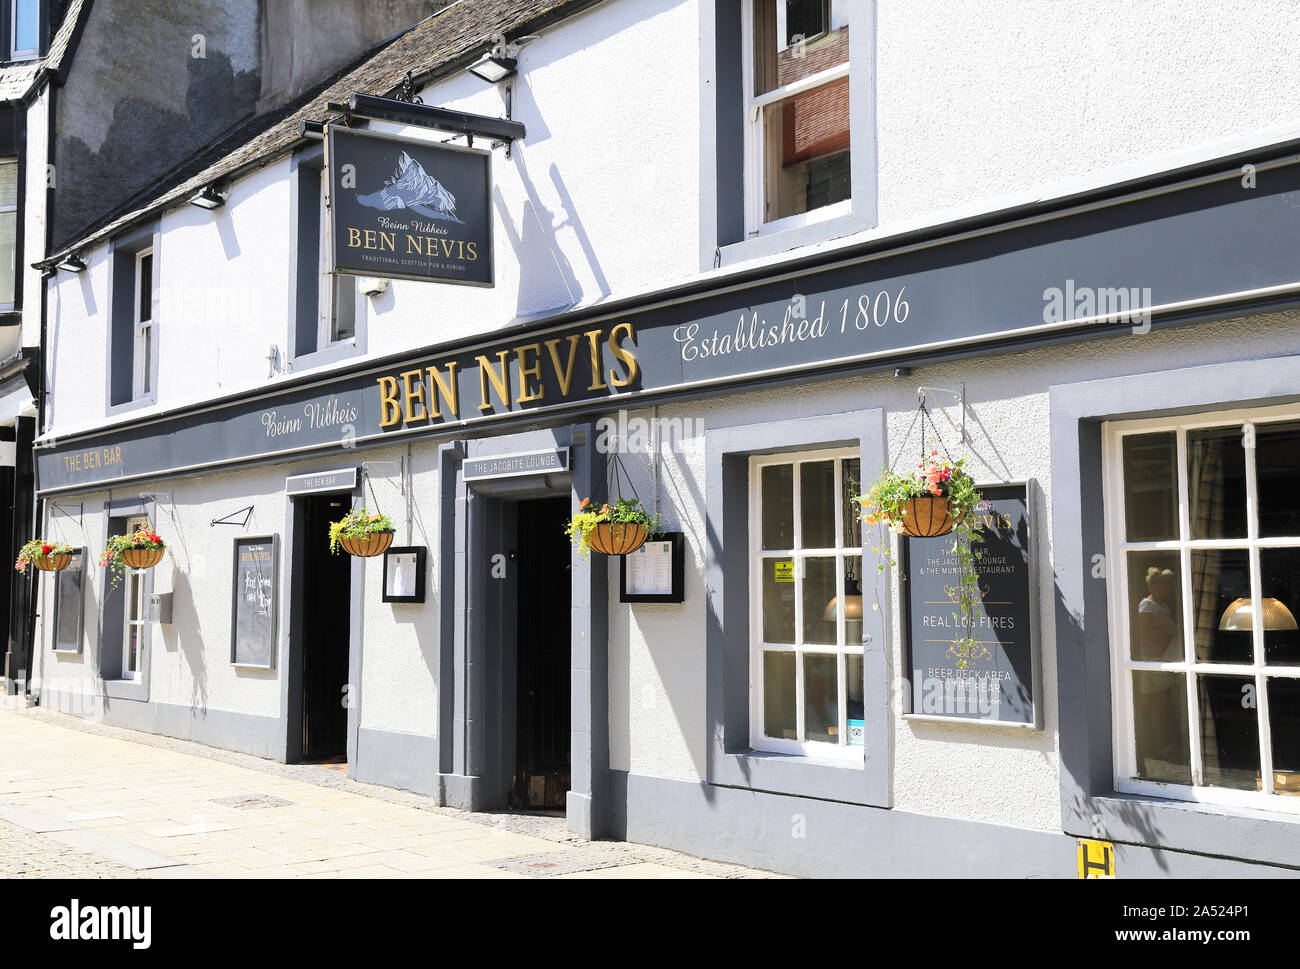 Ben Nevis traditional Scottish pub, on the High Street in Fort William, the gateway to Ben Nevis, in the Scottish Highlands, UK Stock Photo